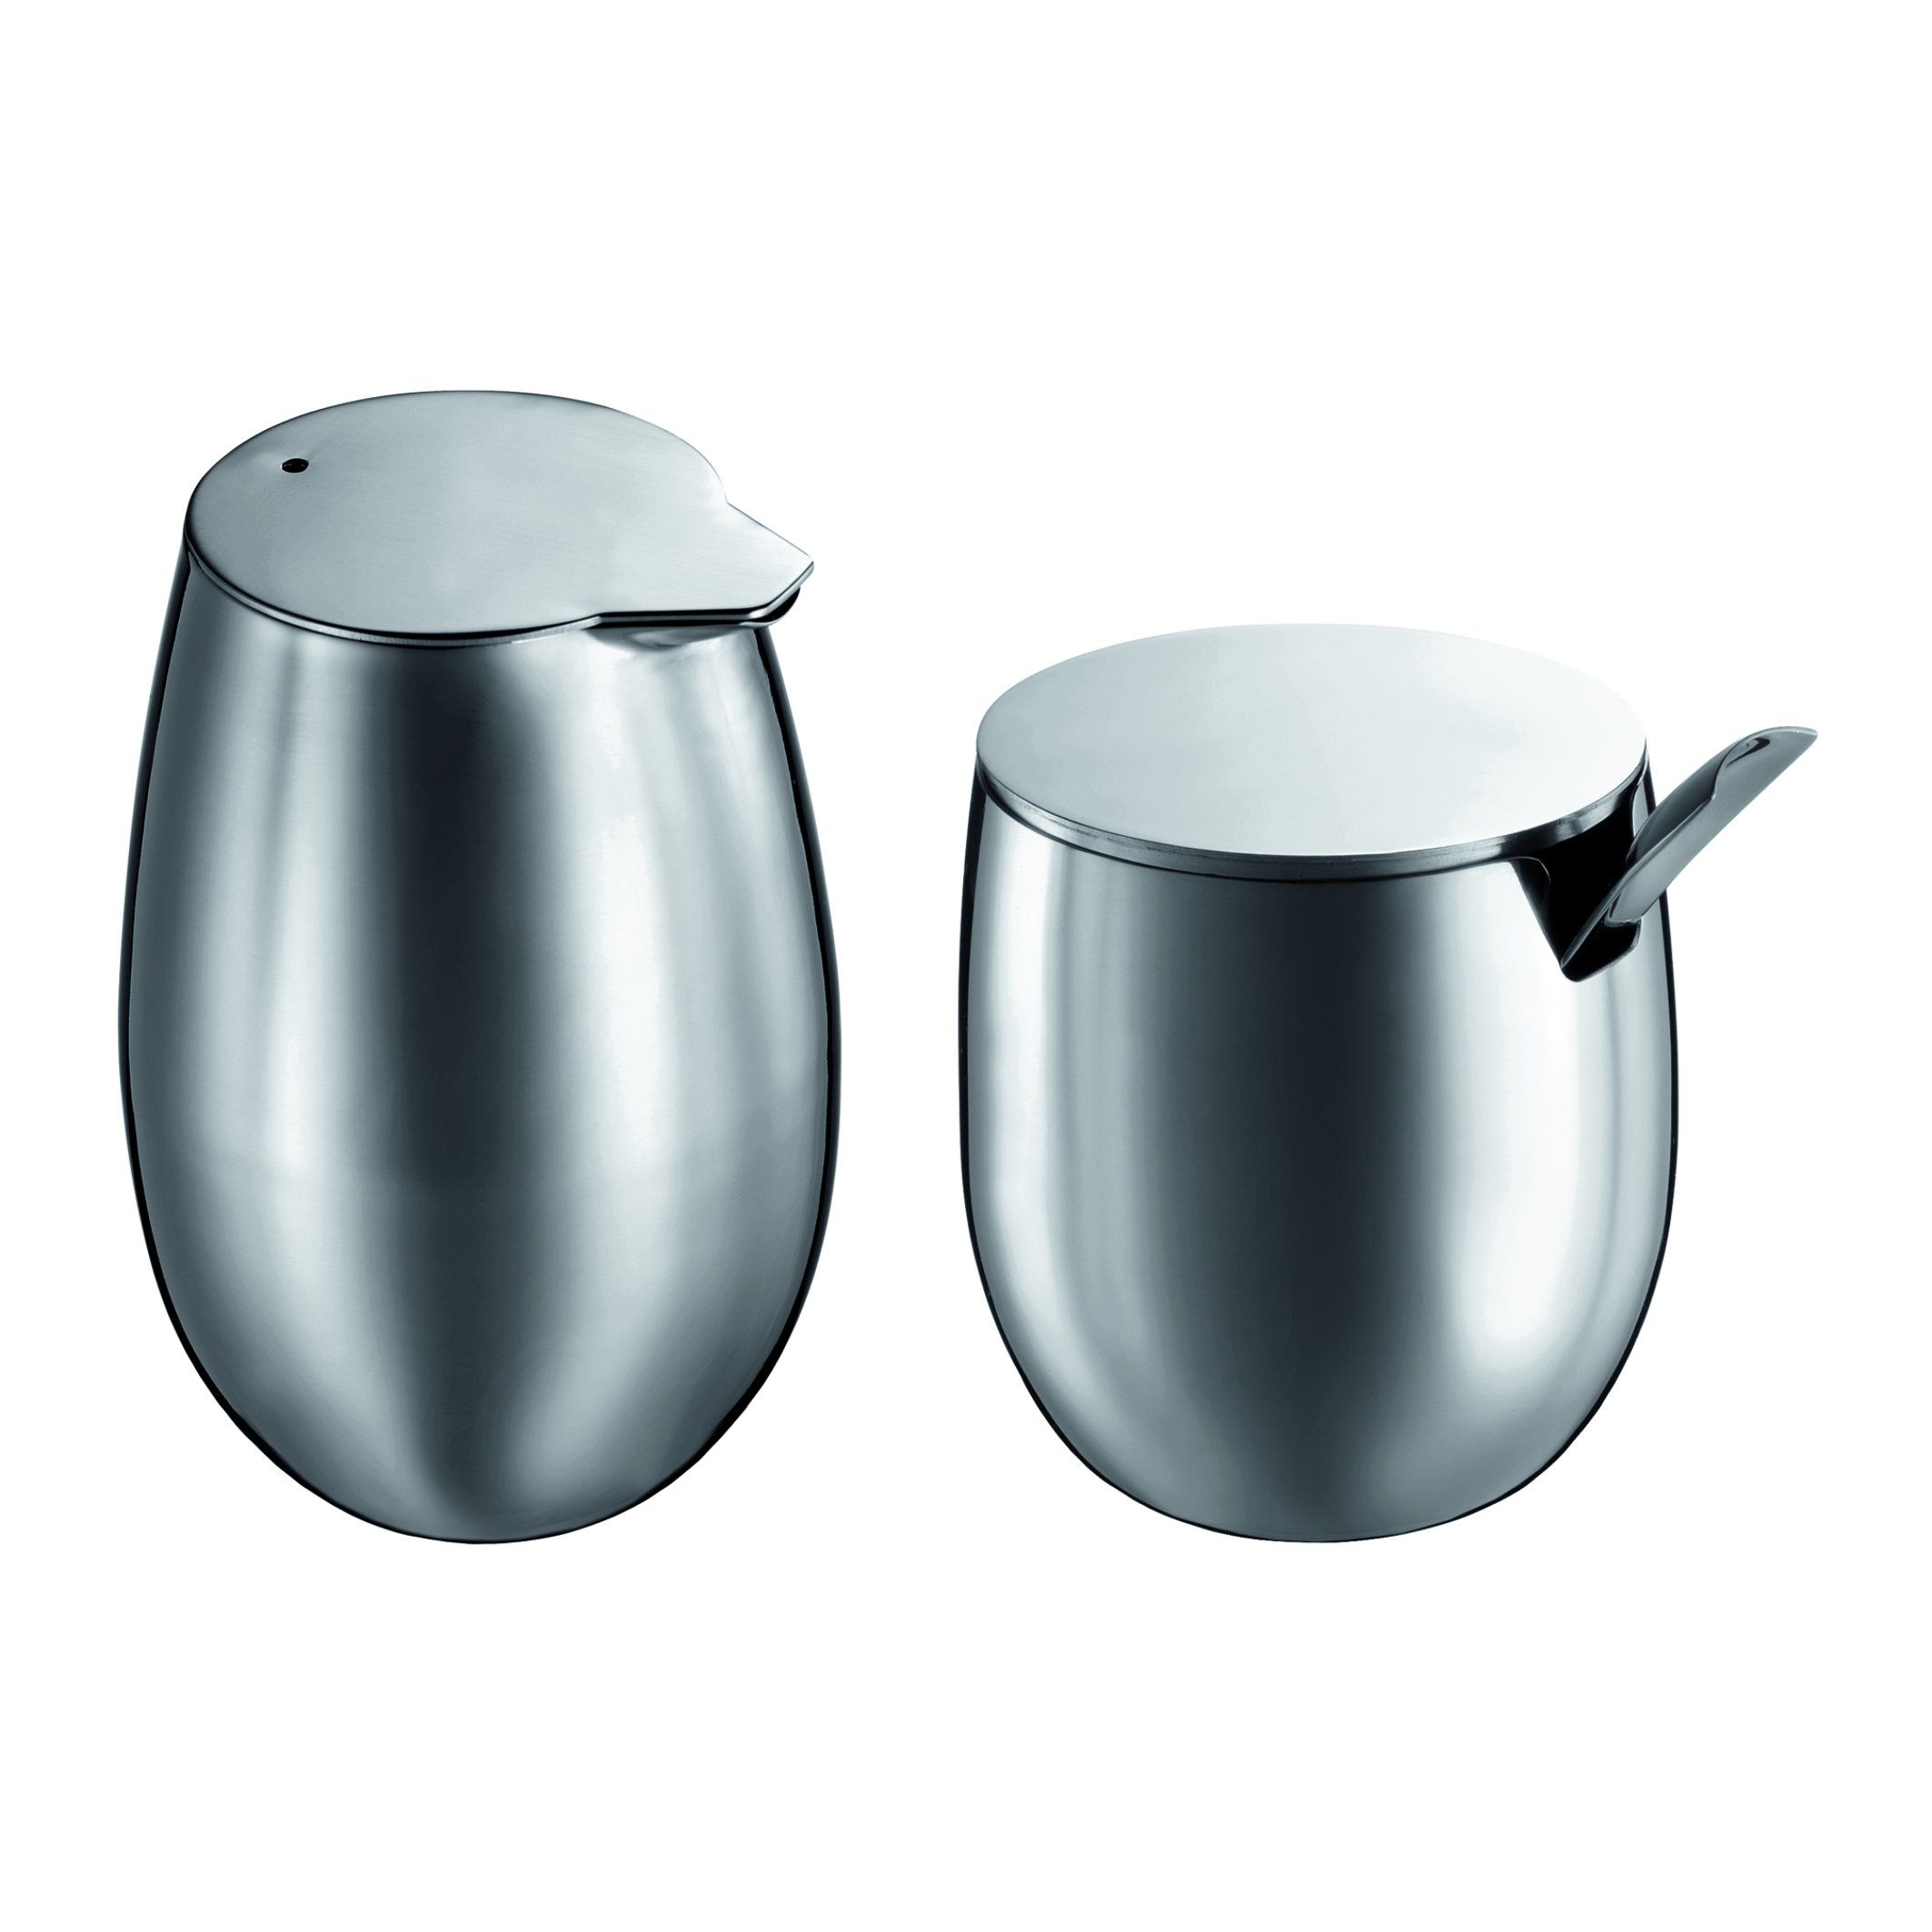 Bodum Columbia - Sugar and Creamer Set - Also Suitable as Milk Jug Dishwasher Safe - 7cm Diameter - Matt by Bodum